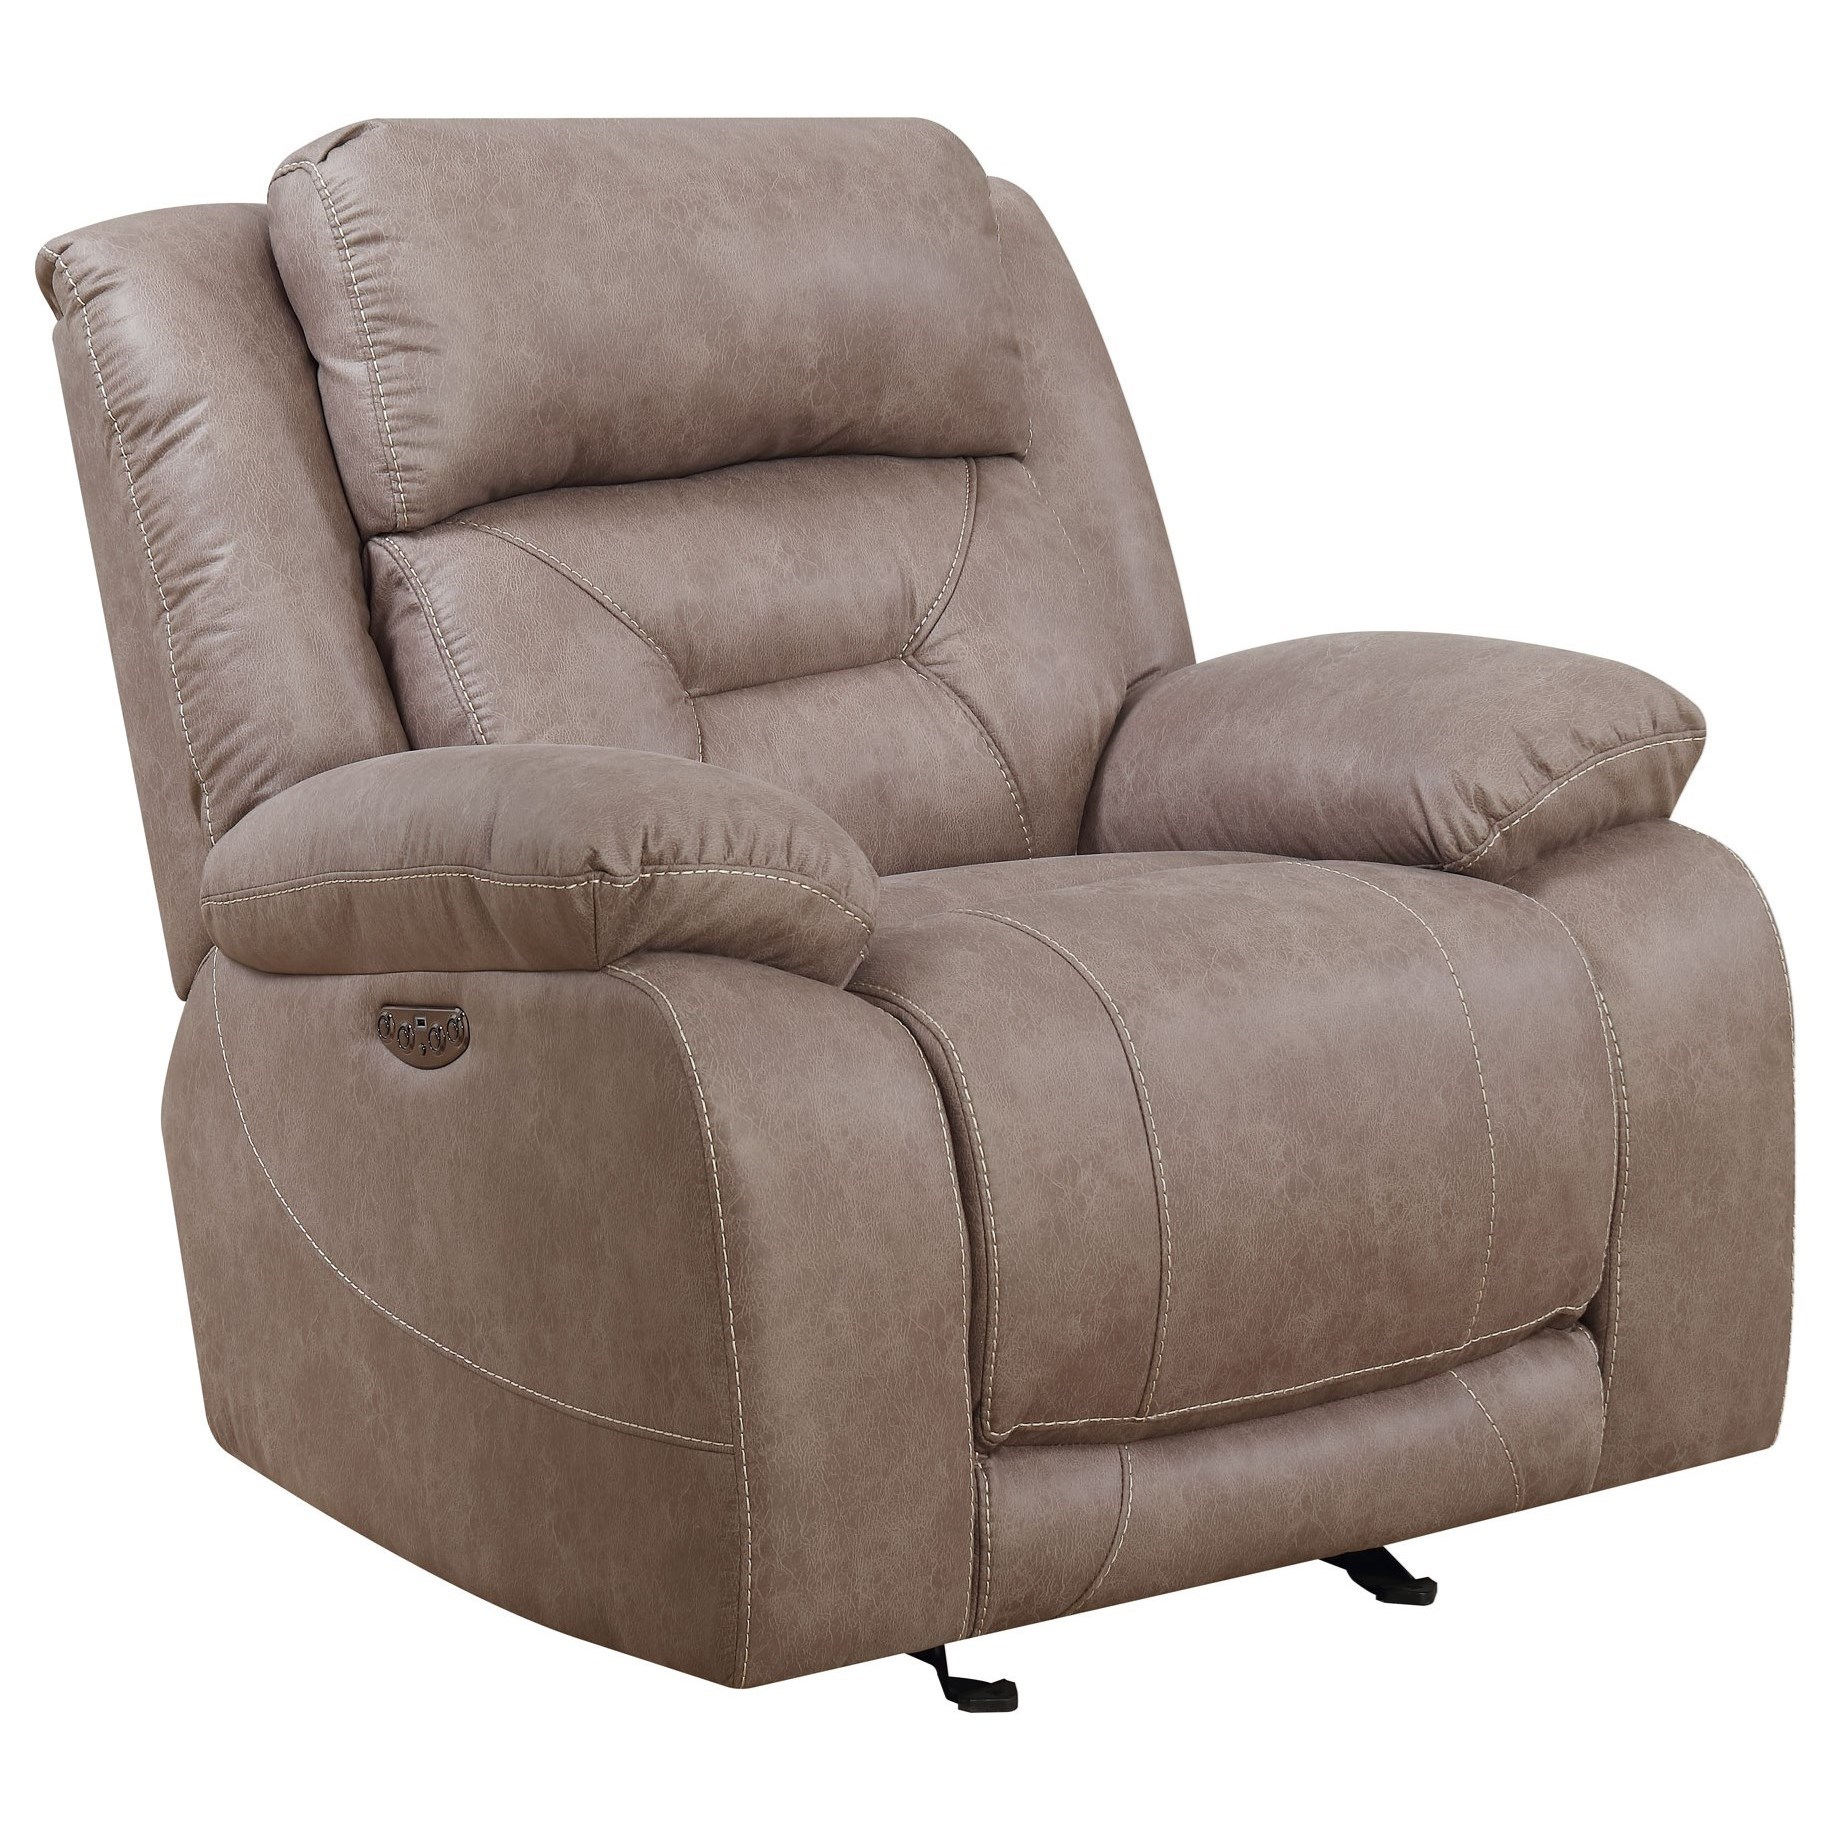 Vendor 3985 Aria 0176074 Power Recliner Becker Furniture Recliners